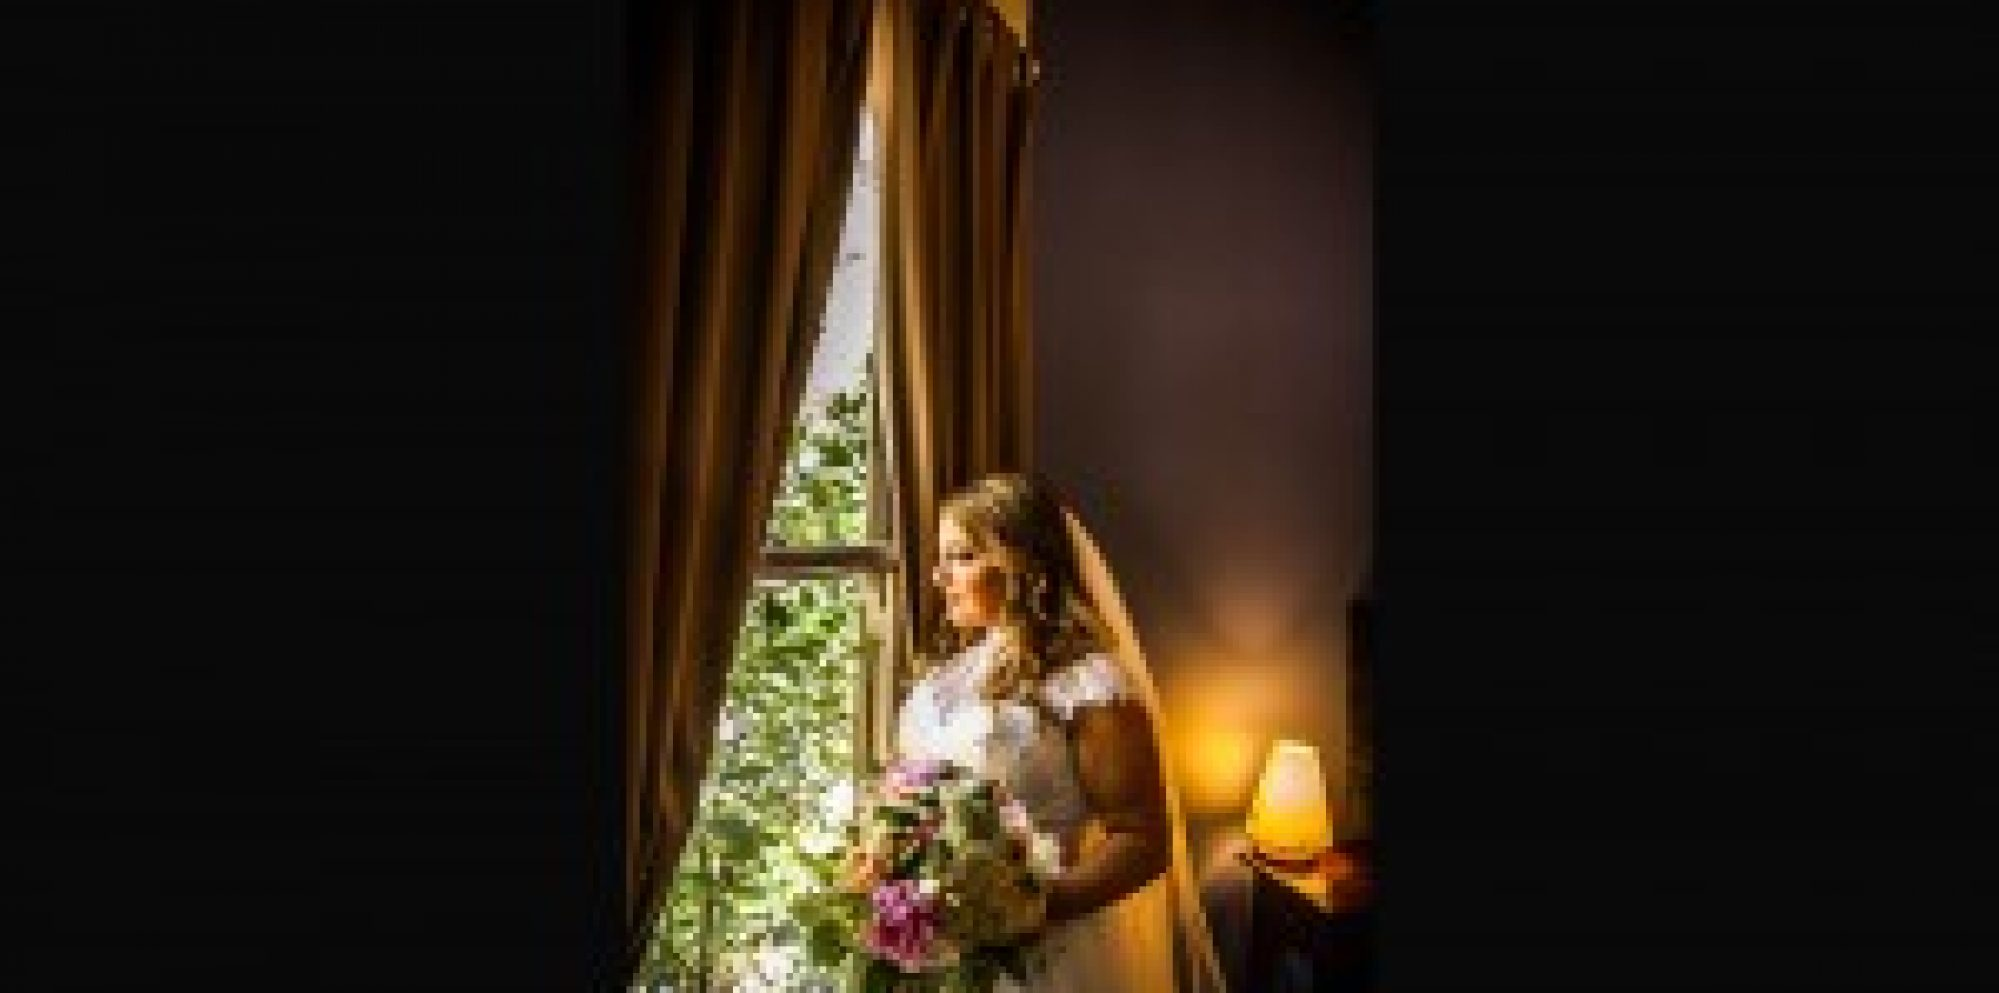 Why digital photography is needed in weddings?